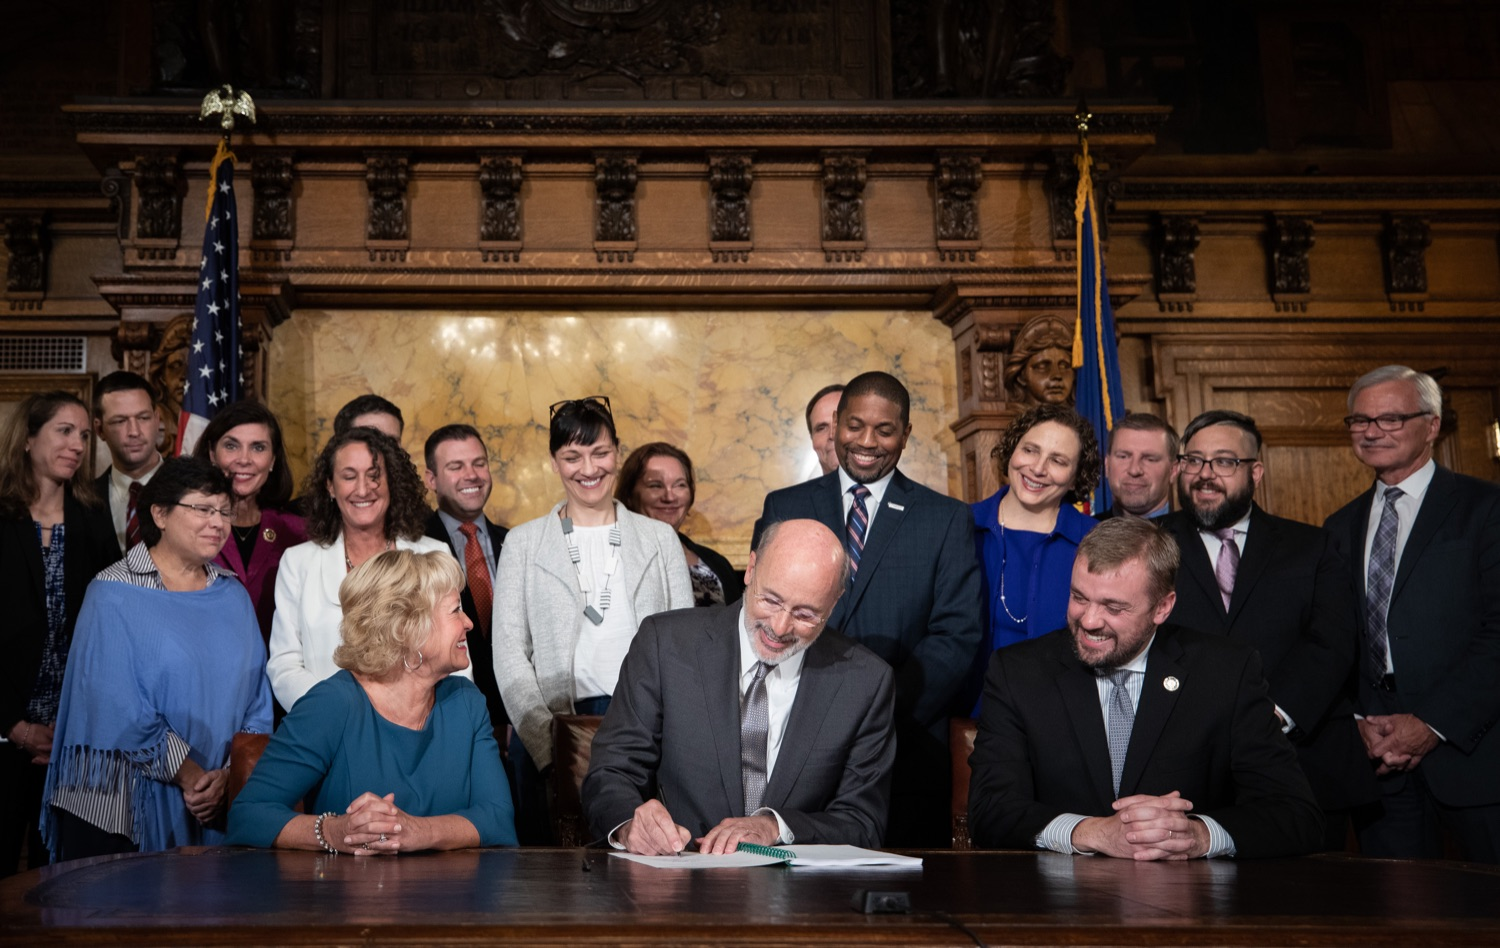 "<a href=""https://filesource.wostreaming.net/commonwealthofpa/photo/17554_gov_voter_reform_bill_dz_001.jpg"" target=""_blank"">⇣ Download Photo<br></a>Harrisburg, PA  Governor Tom Wolf signs the Election Reform Bill. Governor Wolf made voting more convenient and secure by signing Act 77 of 2019, the most significant improvement to Pennsylvanias elections in more than 80 years. The bipartisan compromise legislation takes effect for the April 2020 primary election and makes Pennsylvania a national leader with voter-friendly election reforms."